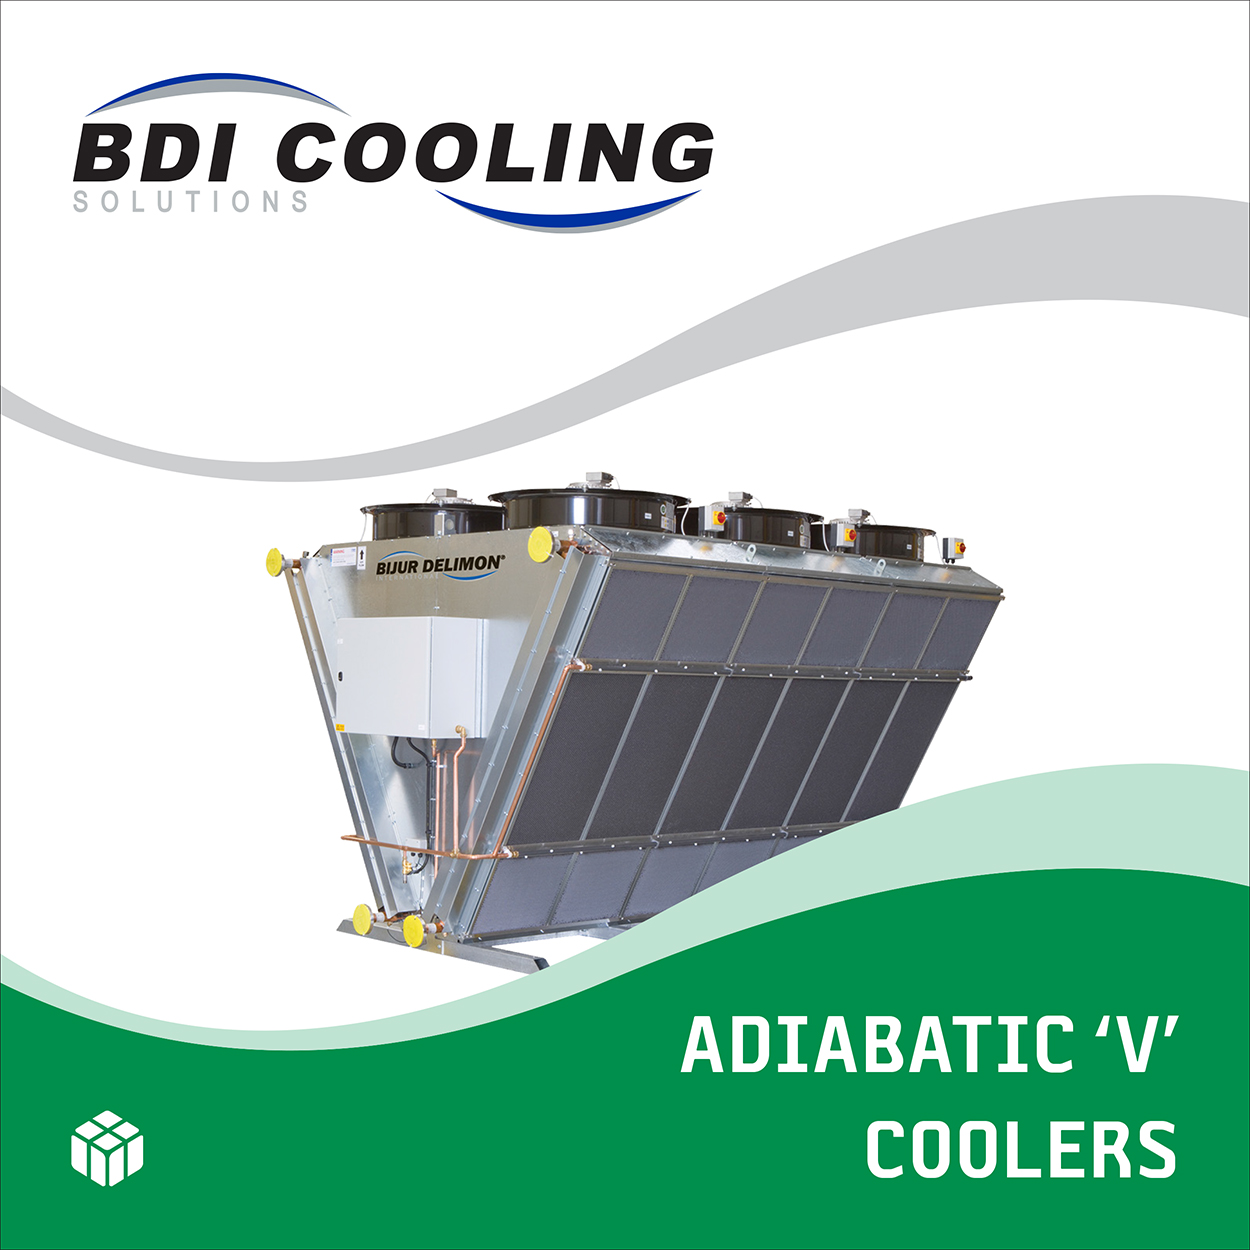 Adiabatic V Coolers